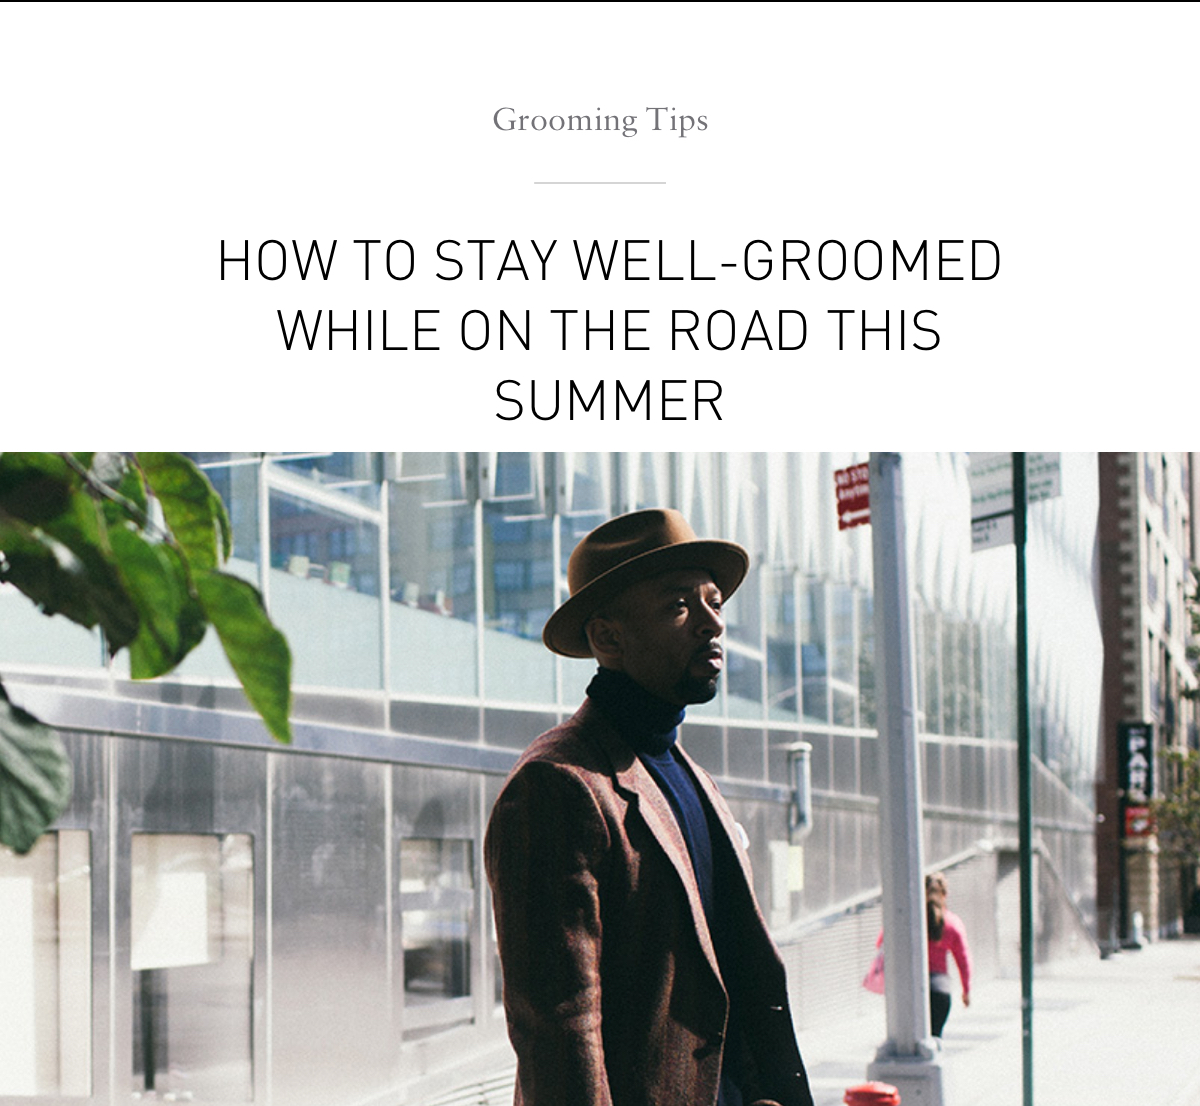 Grooming Tips: How To Stay Well-Groomed While On The Road This Summer